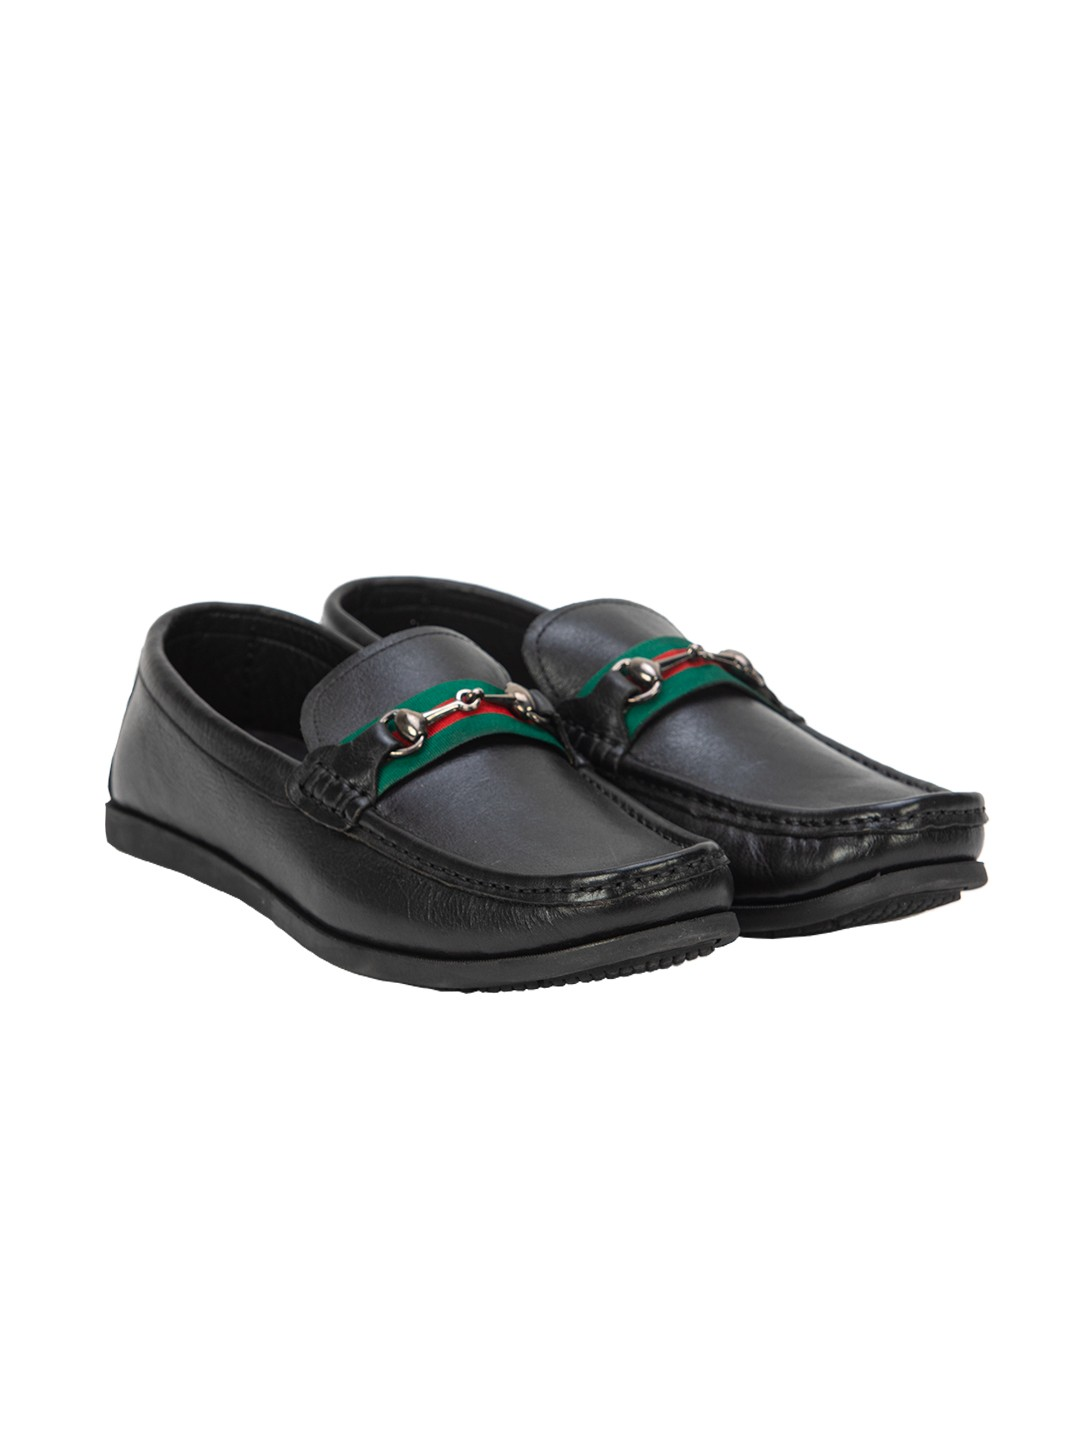 Buy Von Wellx Bryce Comfort Black Loafer Online in Kandy